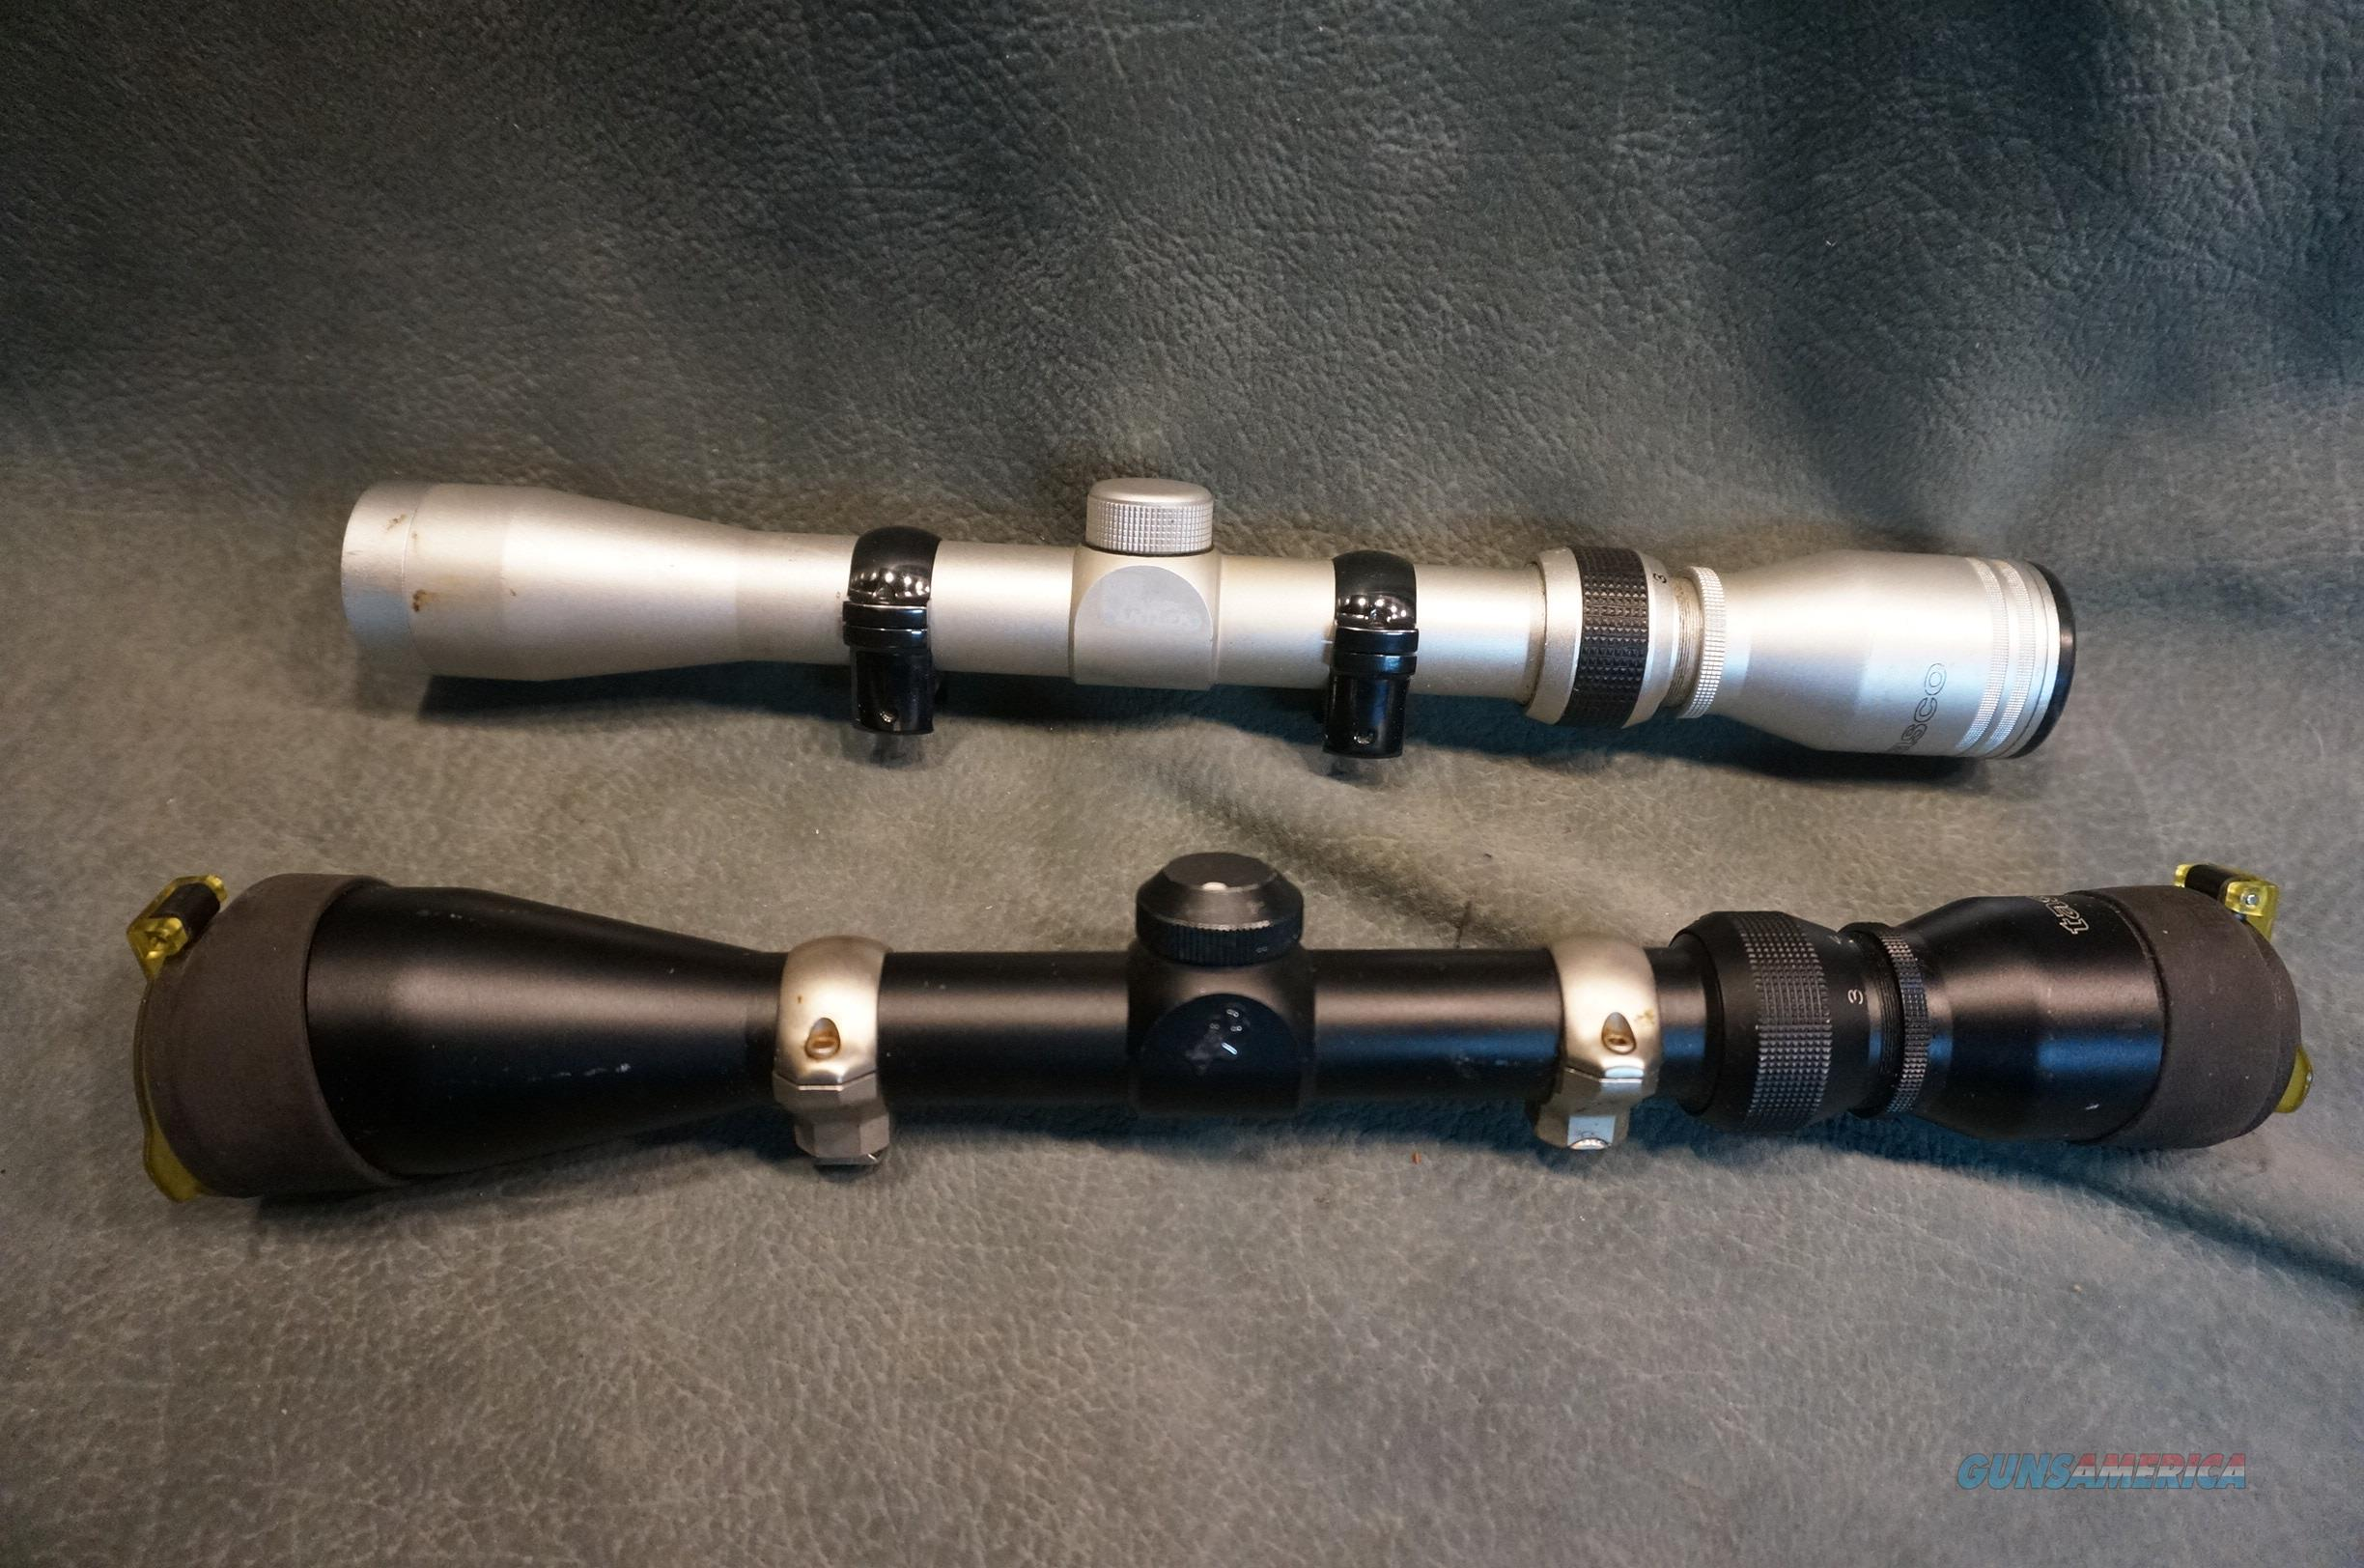 2 Scopes with rings  Non-Guns > Scopes/Mounts/Rings & Optics > Rifle Scopes > Variable Focal Length